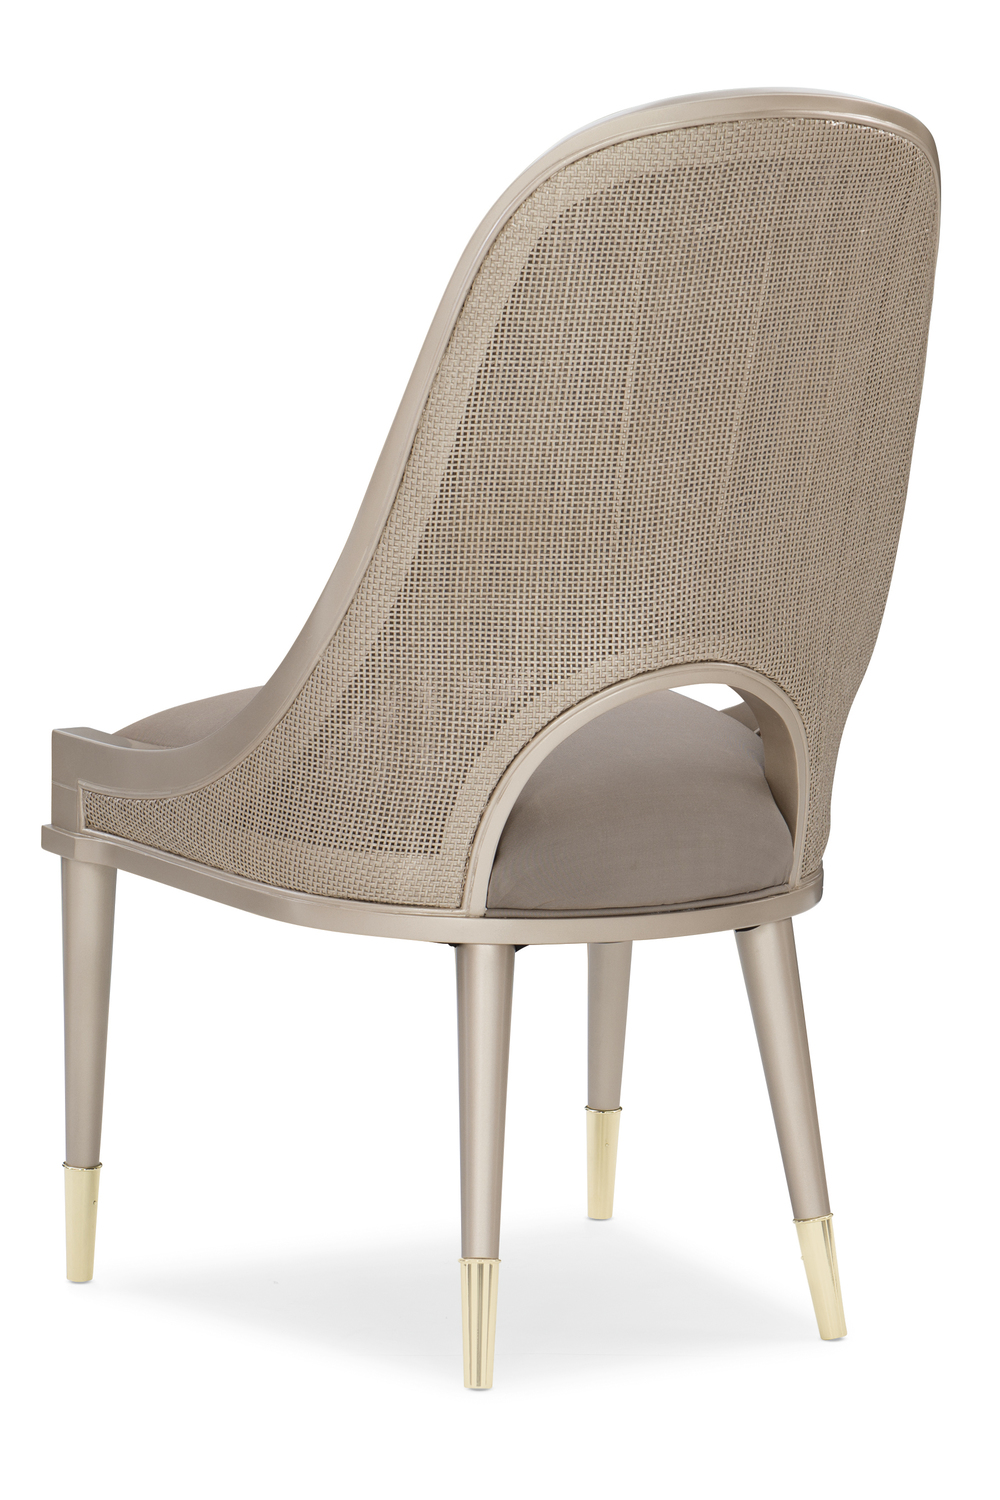 Caracole - Cane I Join You Dining Chair